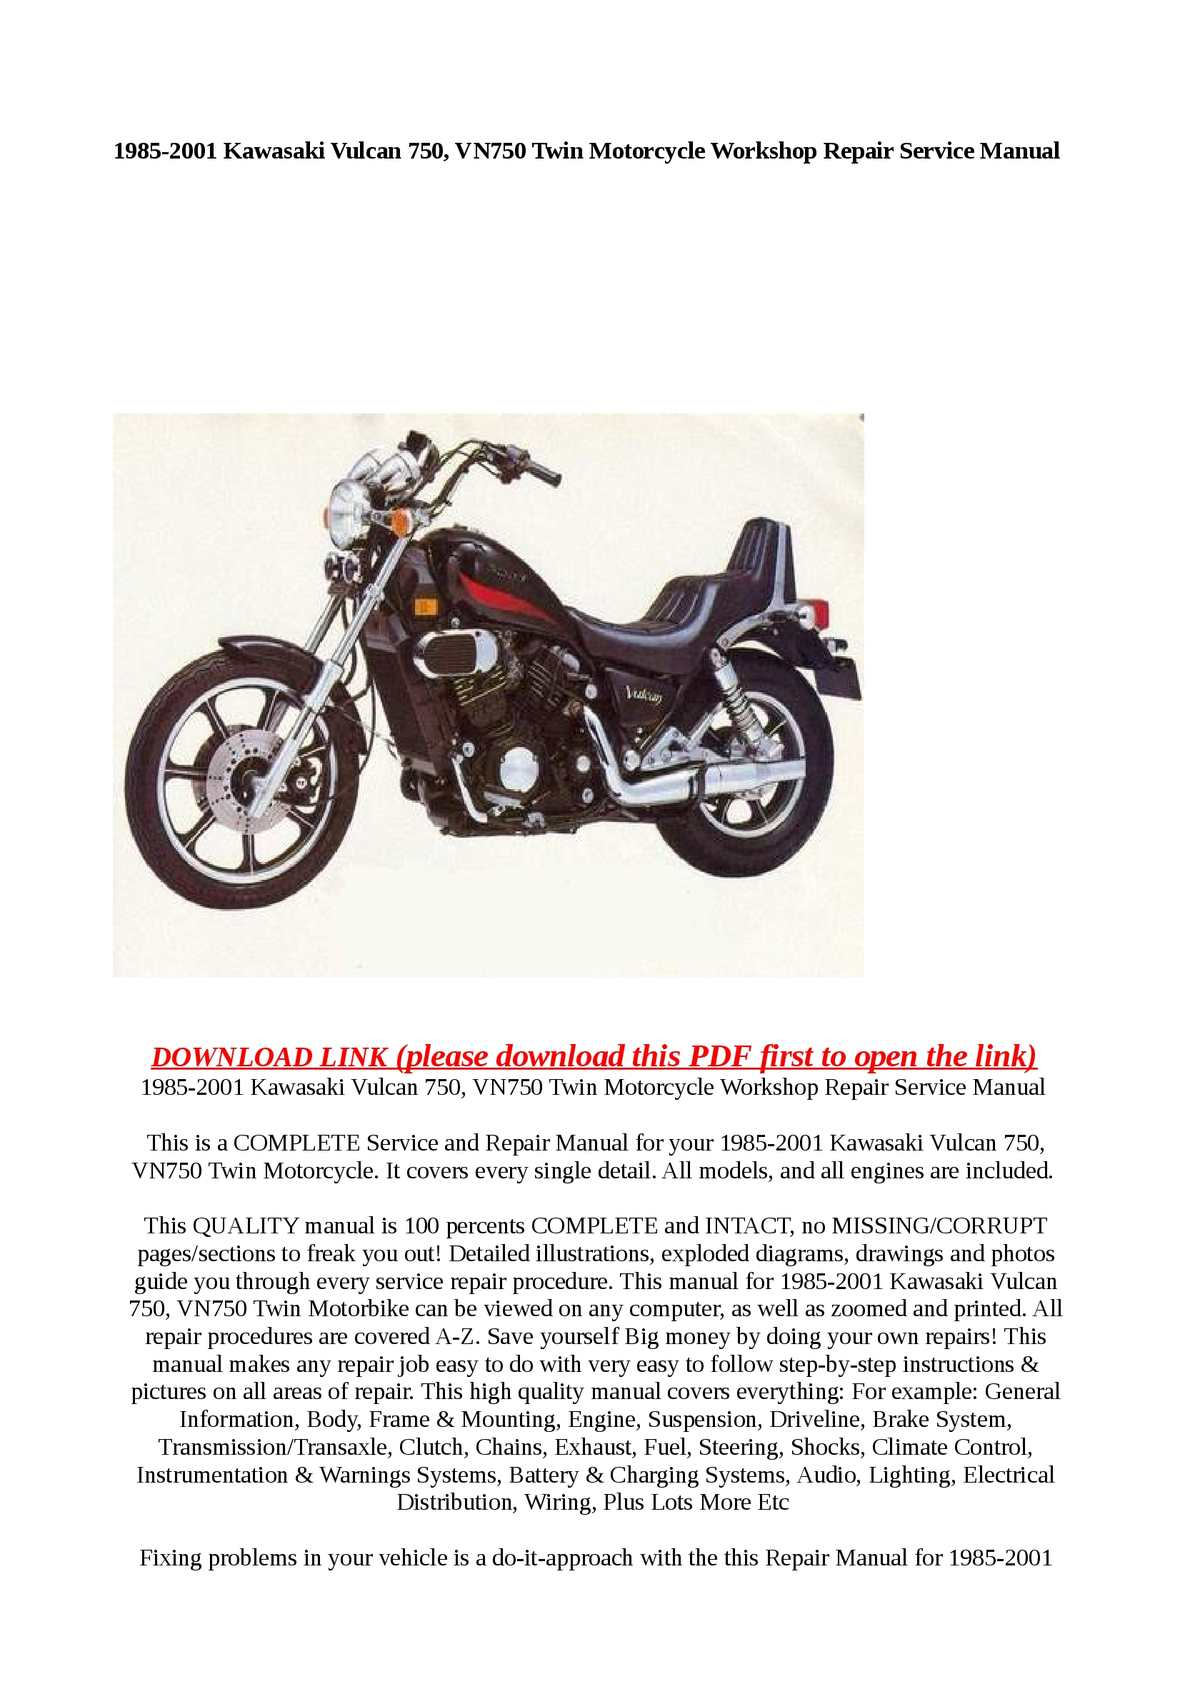 Kawasaki Vulcan 750 Service Manual Free Download Daily Instruction 2001 1500 Wiring Diagram Picture Calam O 1985 Vn750 Twin Motorcycle Rh Calameo Com Blue Custom